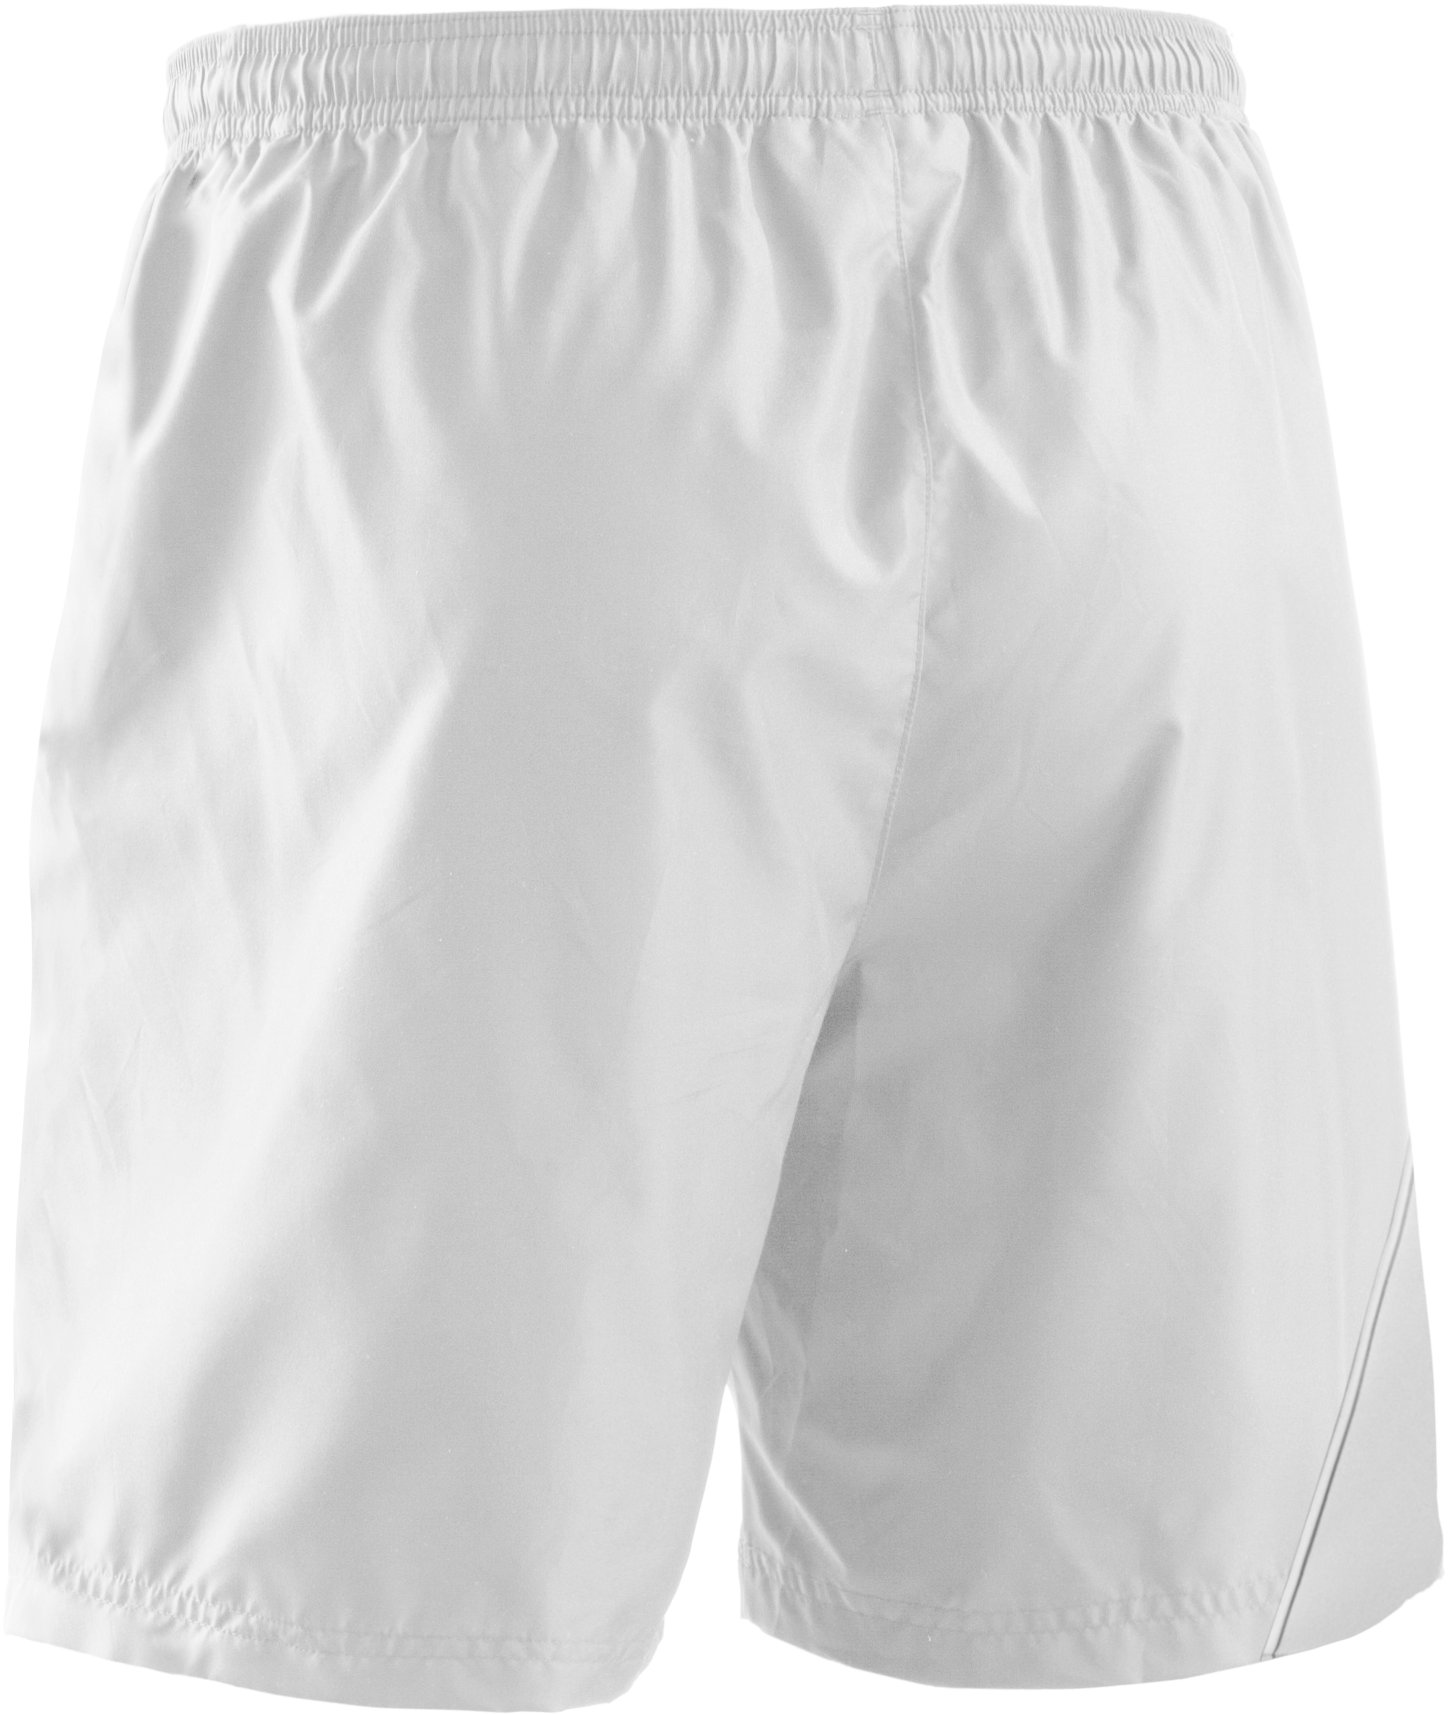 "Men's UA Chaos 7.5"" Soccer Shorts, White"